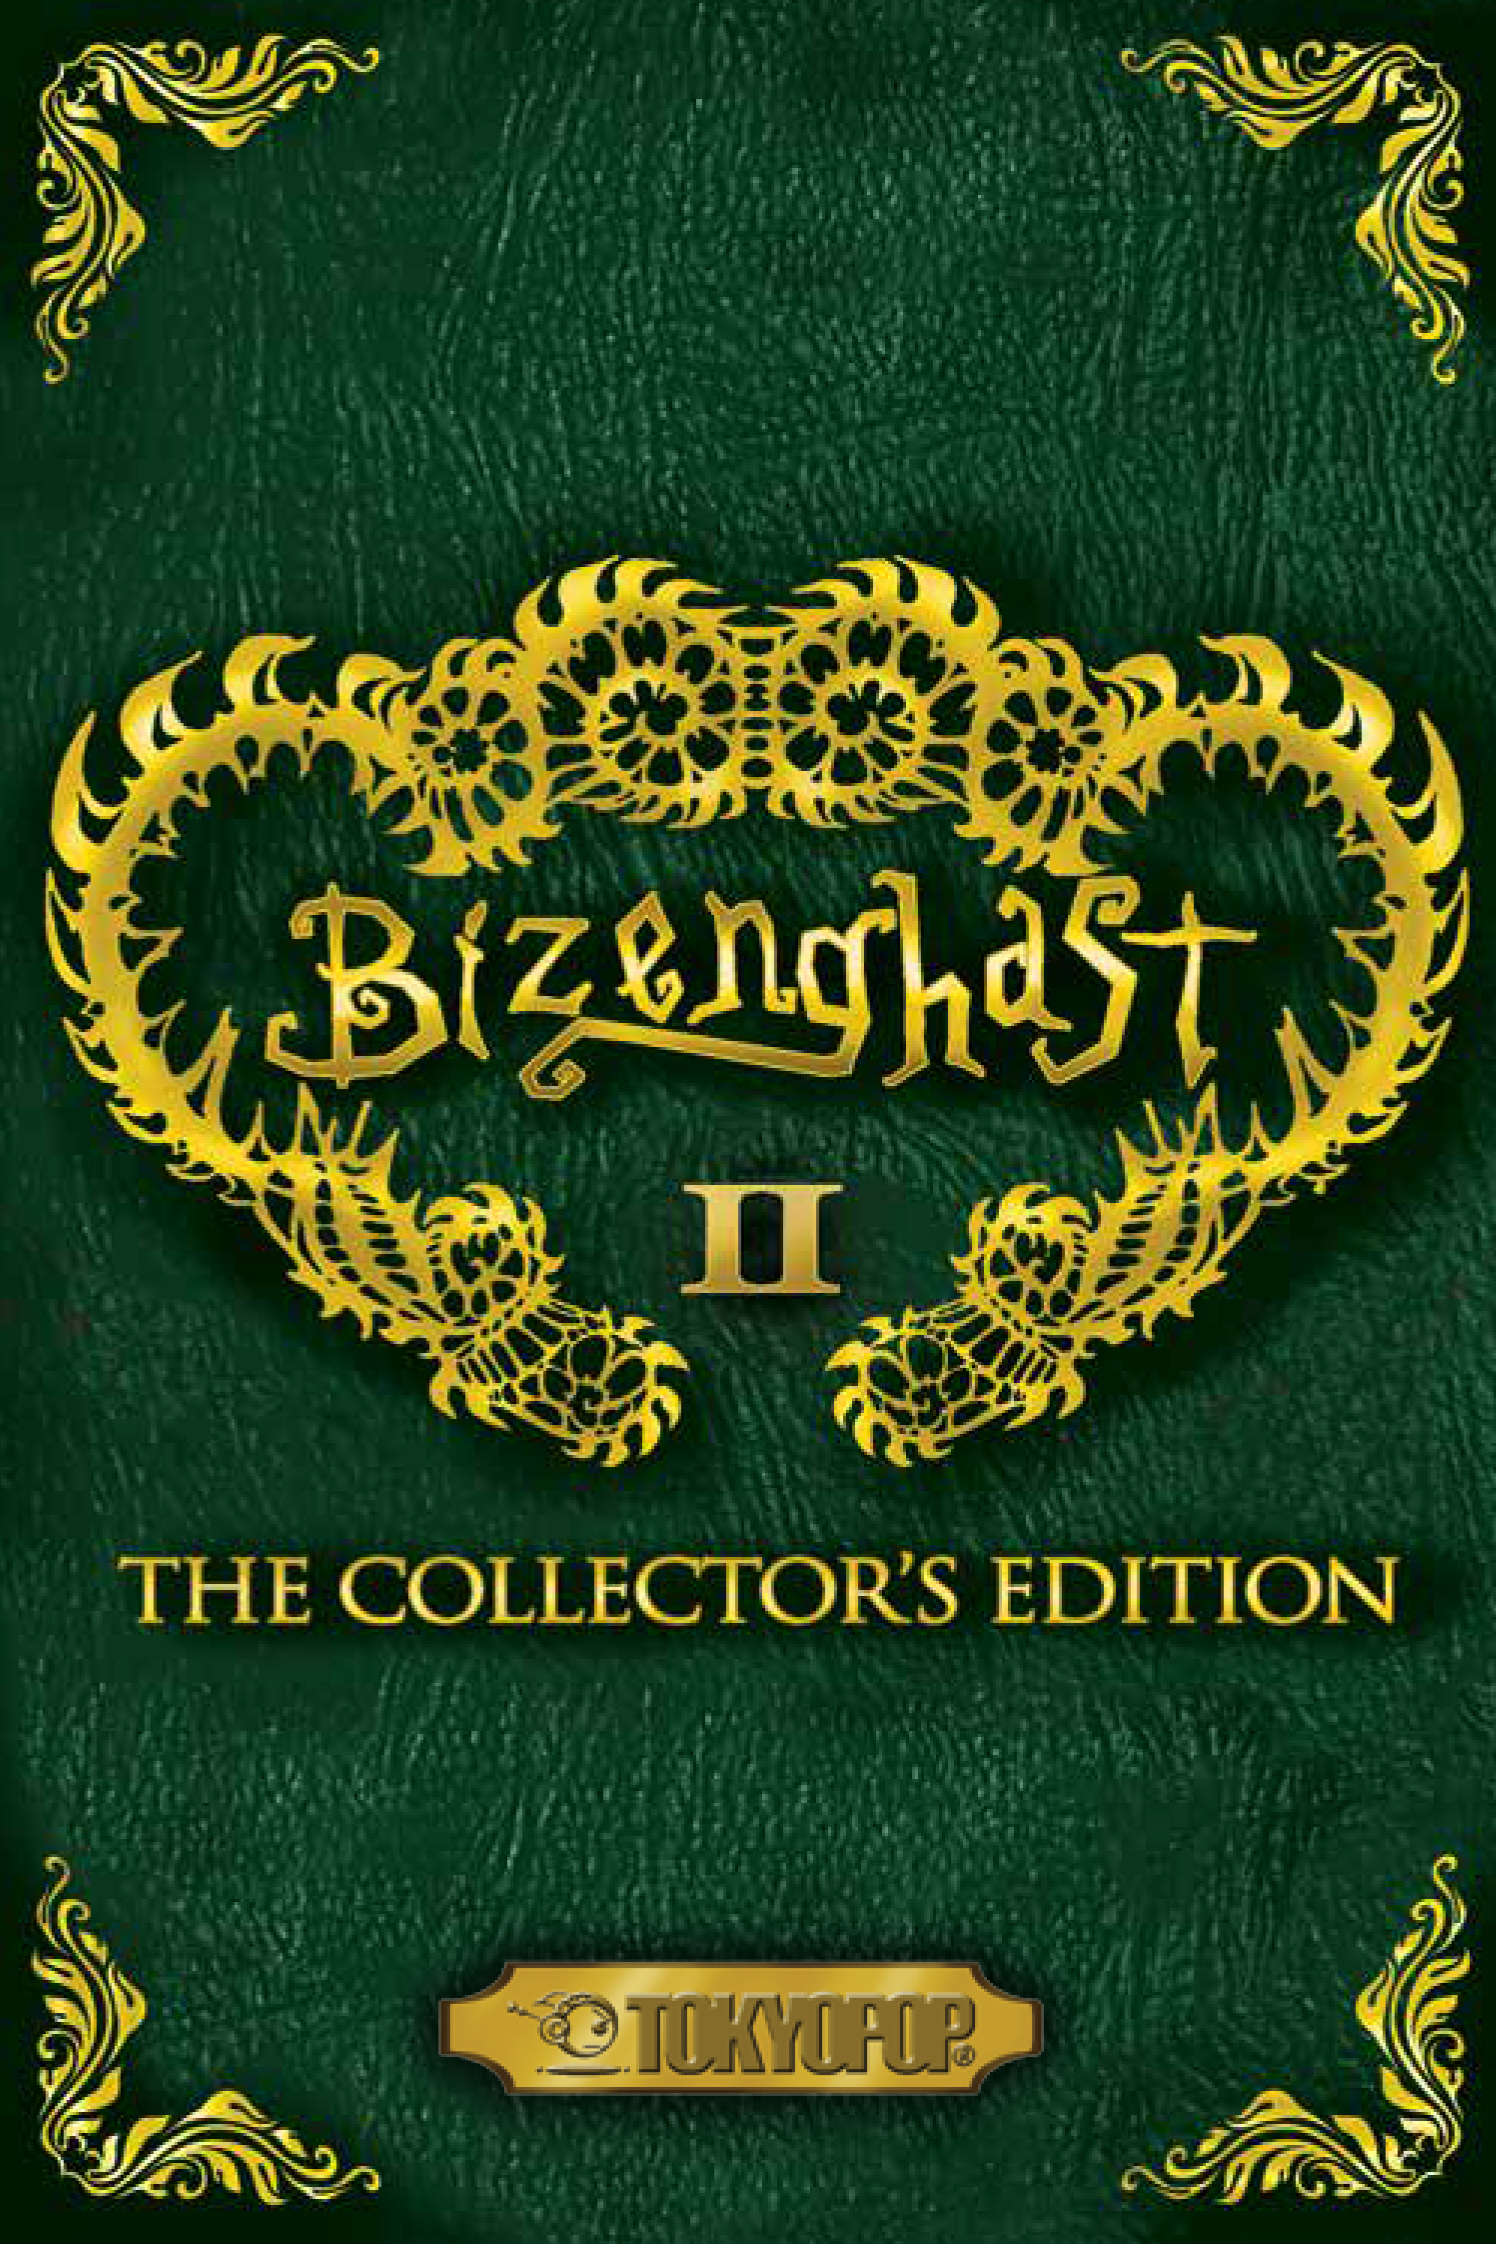 Bizenghast The Collector's Edition Manga Omnibus Volume 2 9781427856913